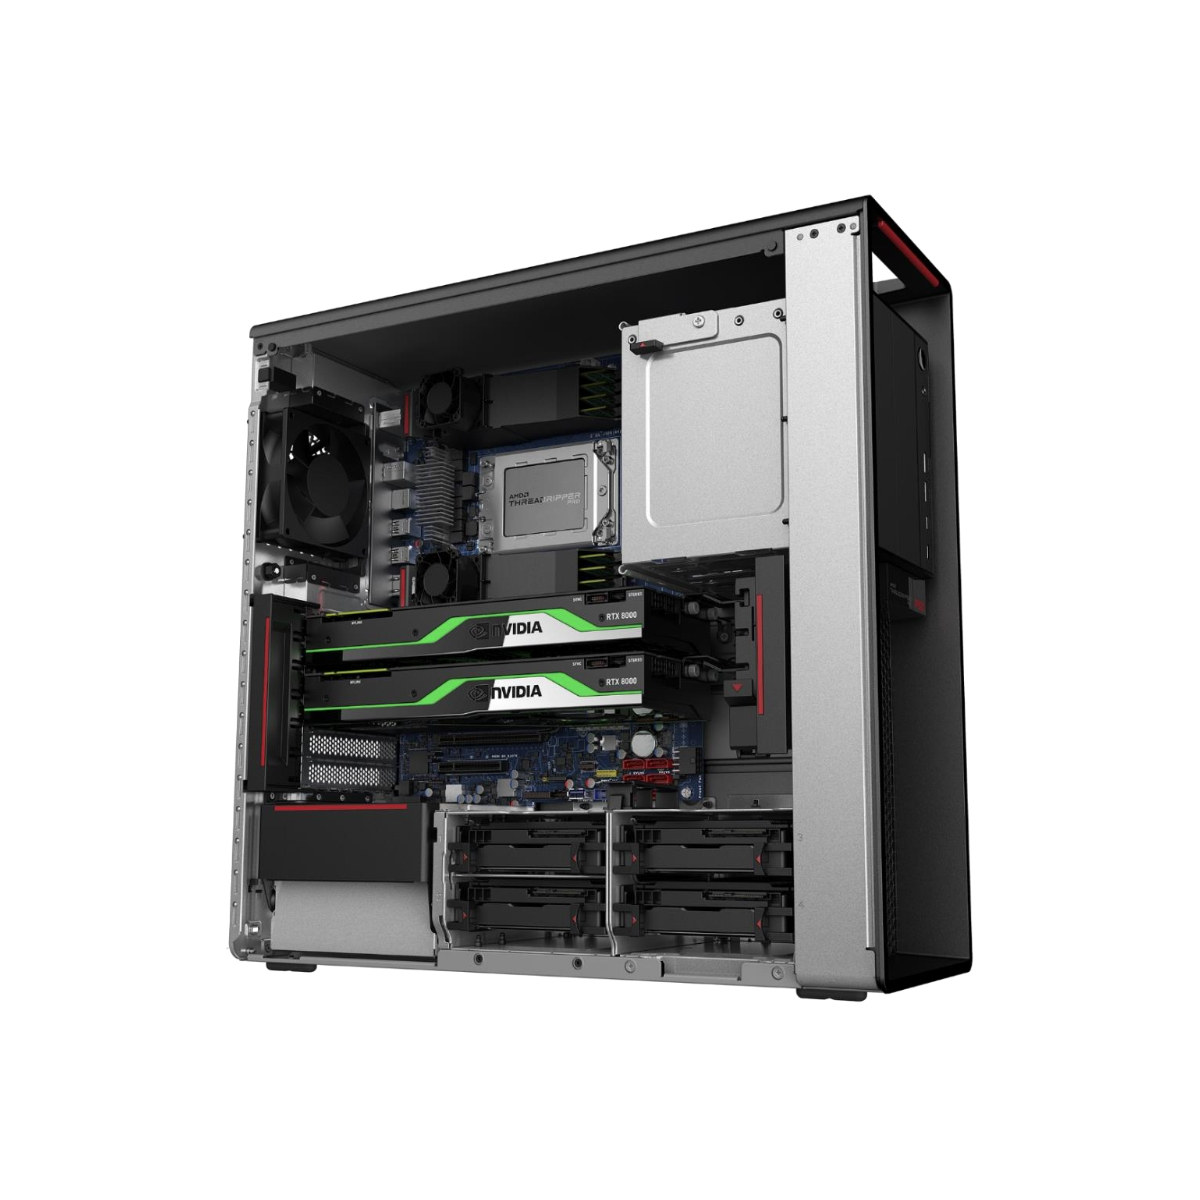 ThinkStation P620 Threadripper PRO Workstation